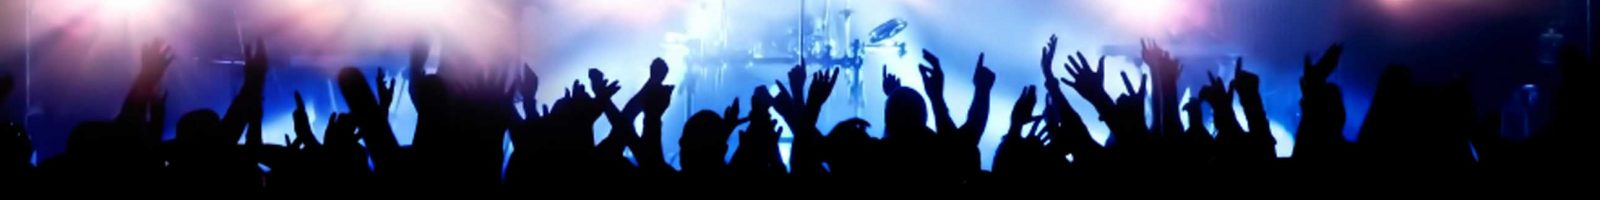 cropped-concert-crowd.jpg